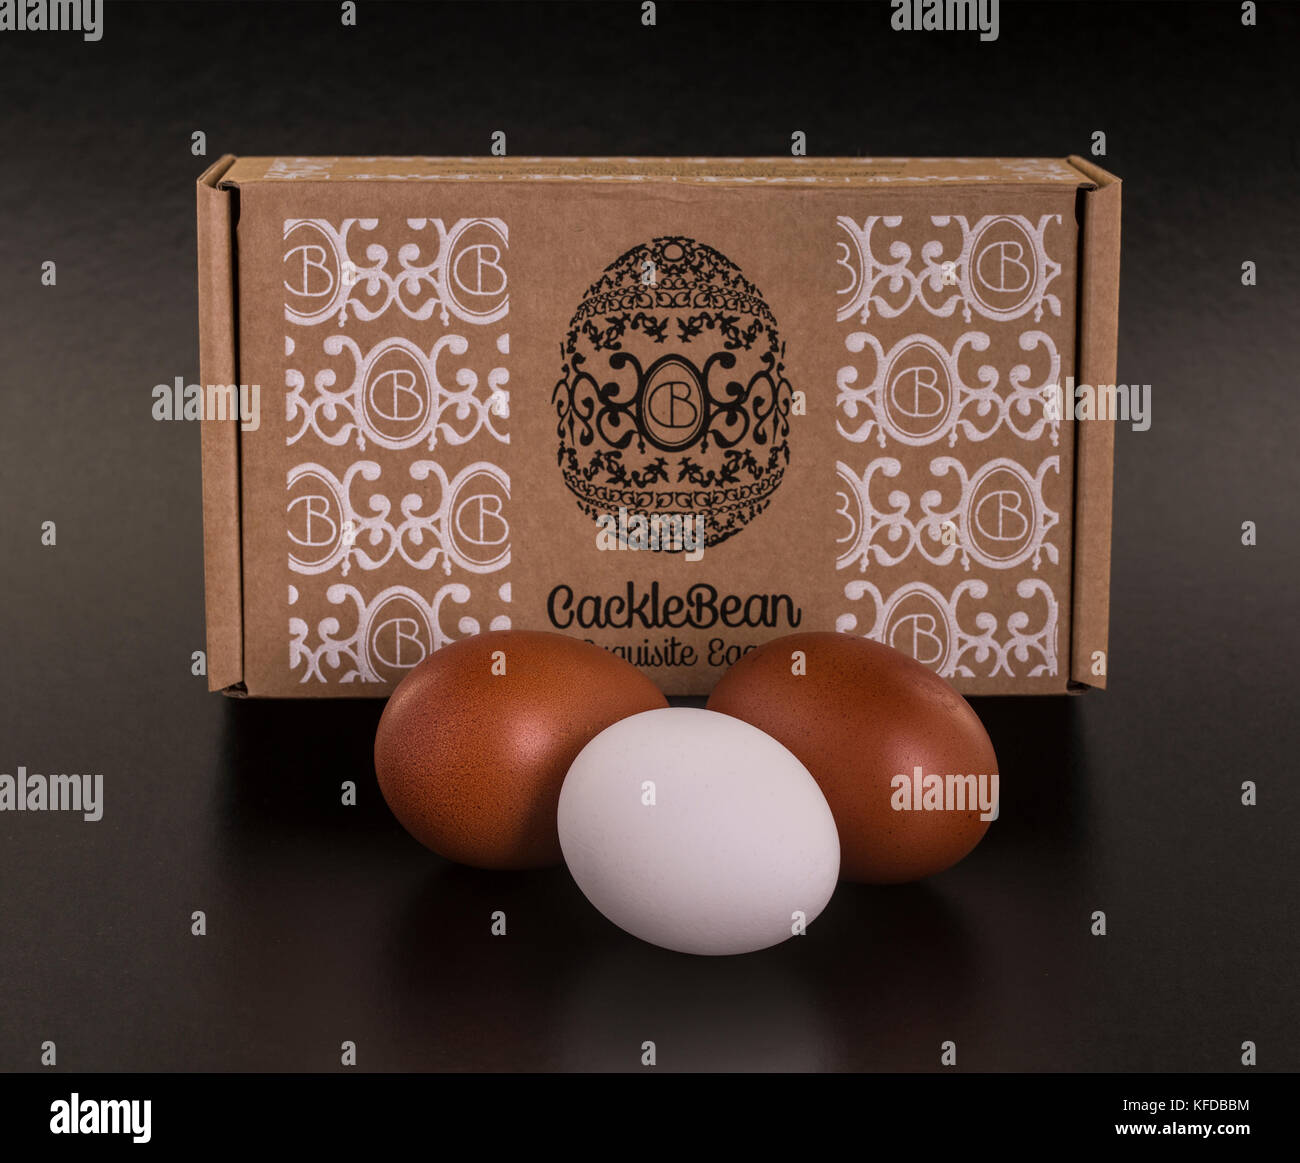 SWINDON, UK - OCTOBER 26, 2017: CackleBean exquisite golden eggs laid by the hens at  Cackleberry Farm in the Cotswolds - Stock Image